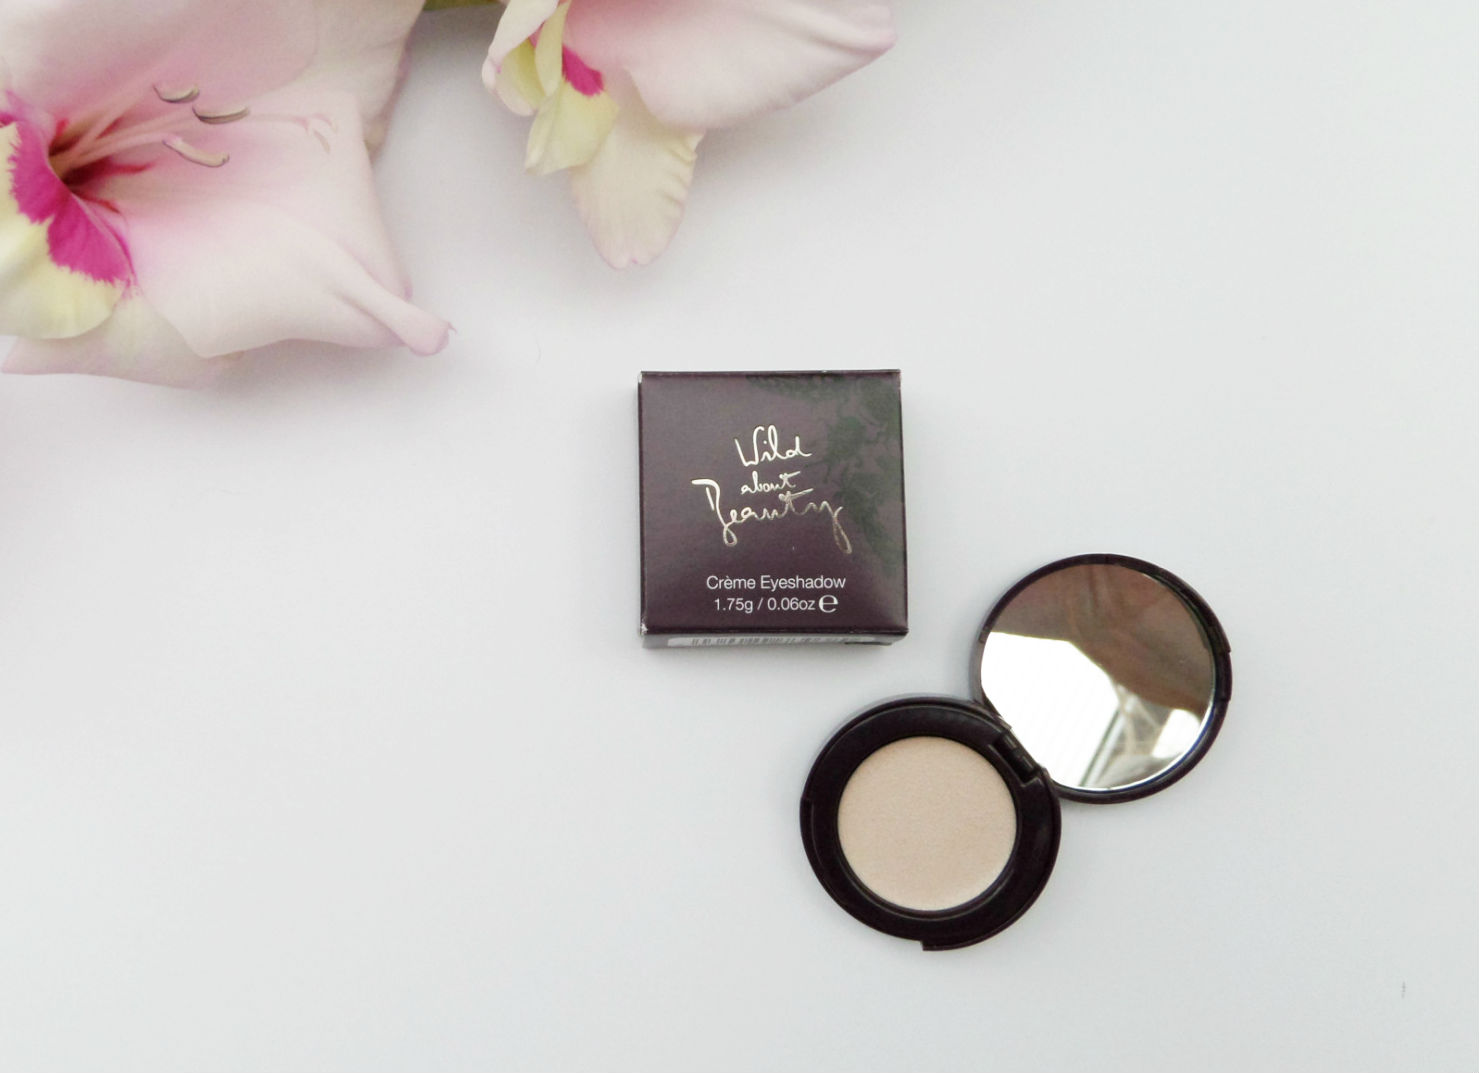 Birchbox | August 2014 Wild About Beauty Eyeshadow